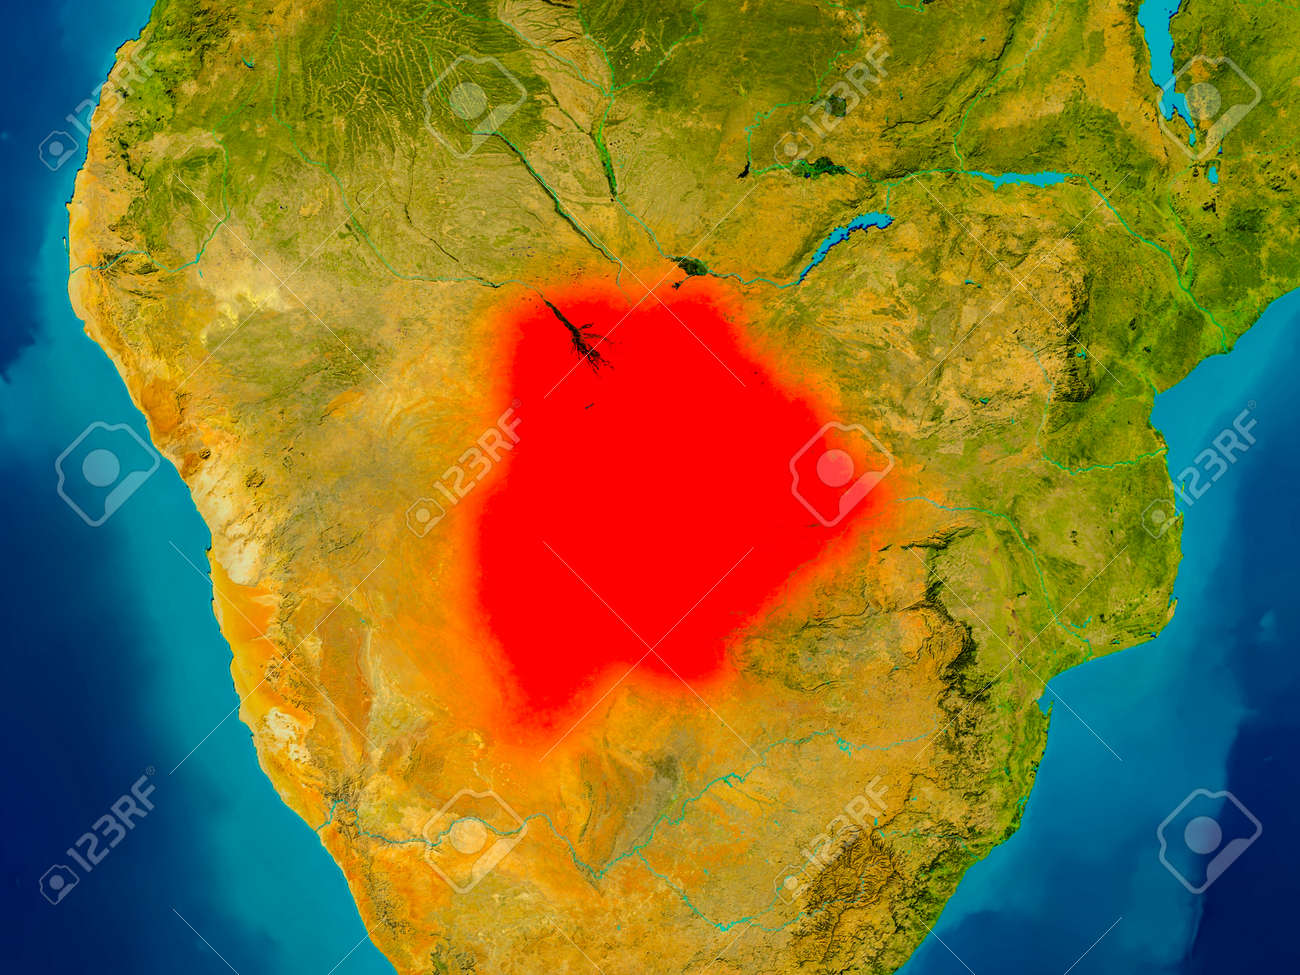 Botswana Highlighted In Red On Physical Map 3D Illustration Stock